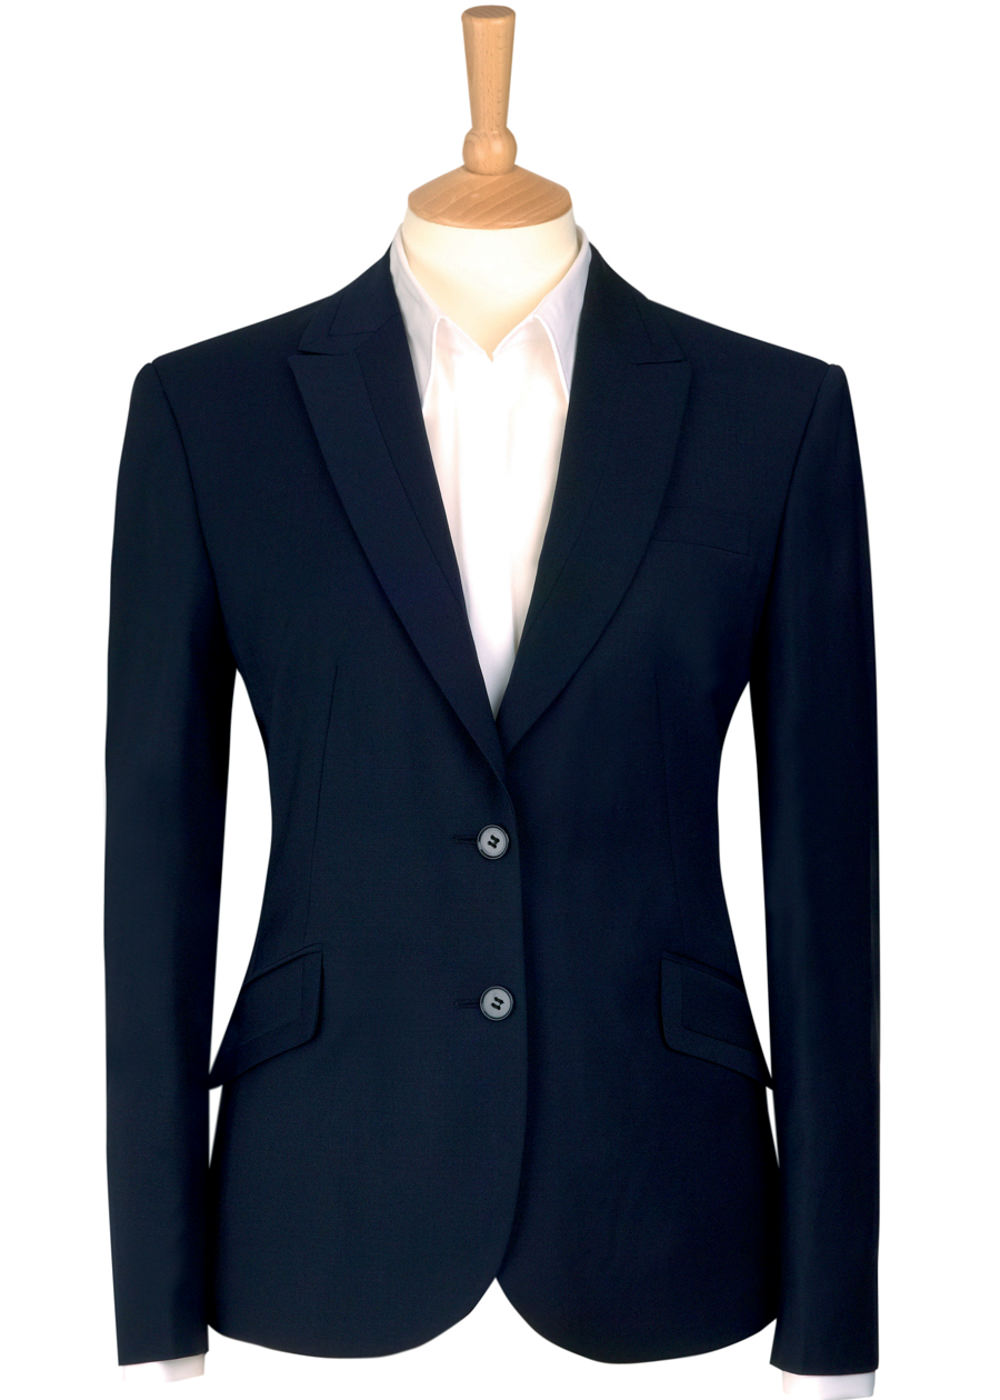 Novara Tailored Fit Jacket